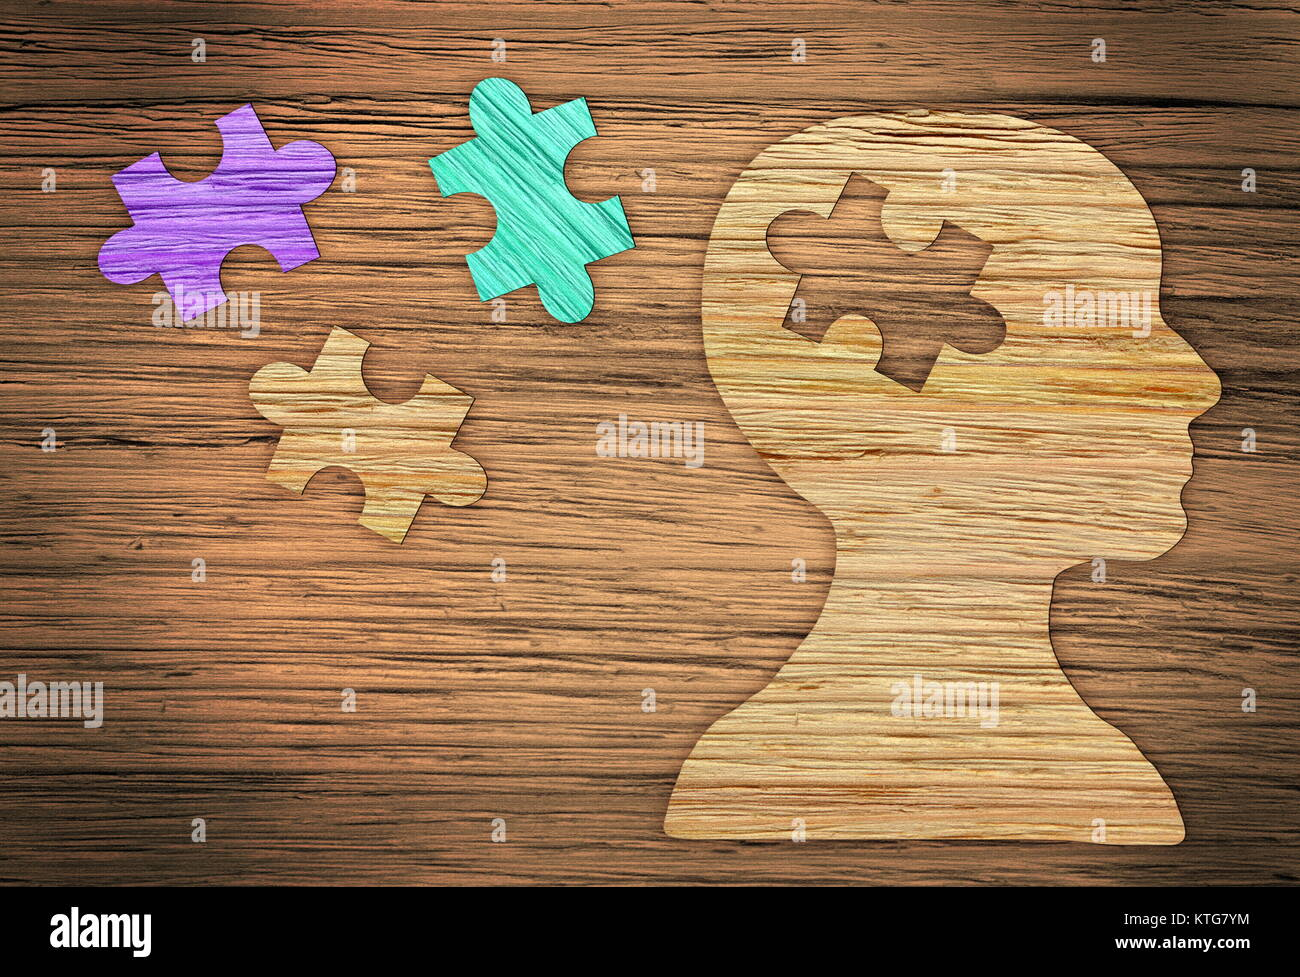 Puzzle head brain concept. Human head profile made from brown paper with a jigsaw piece cut out. - Stock Image